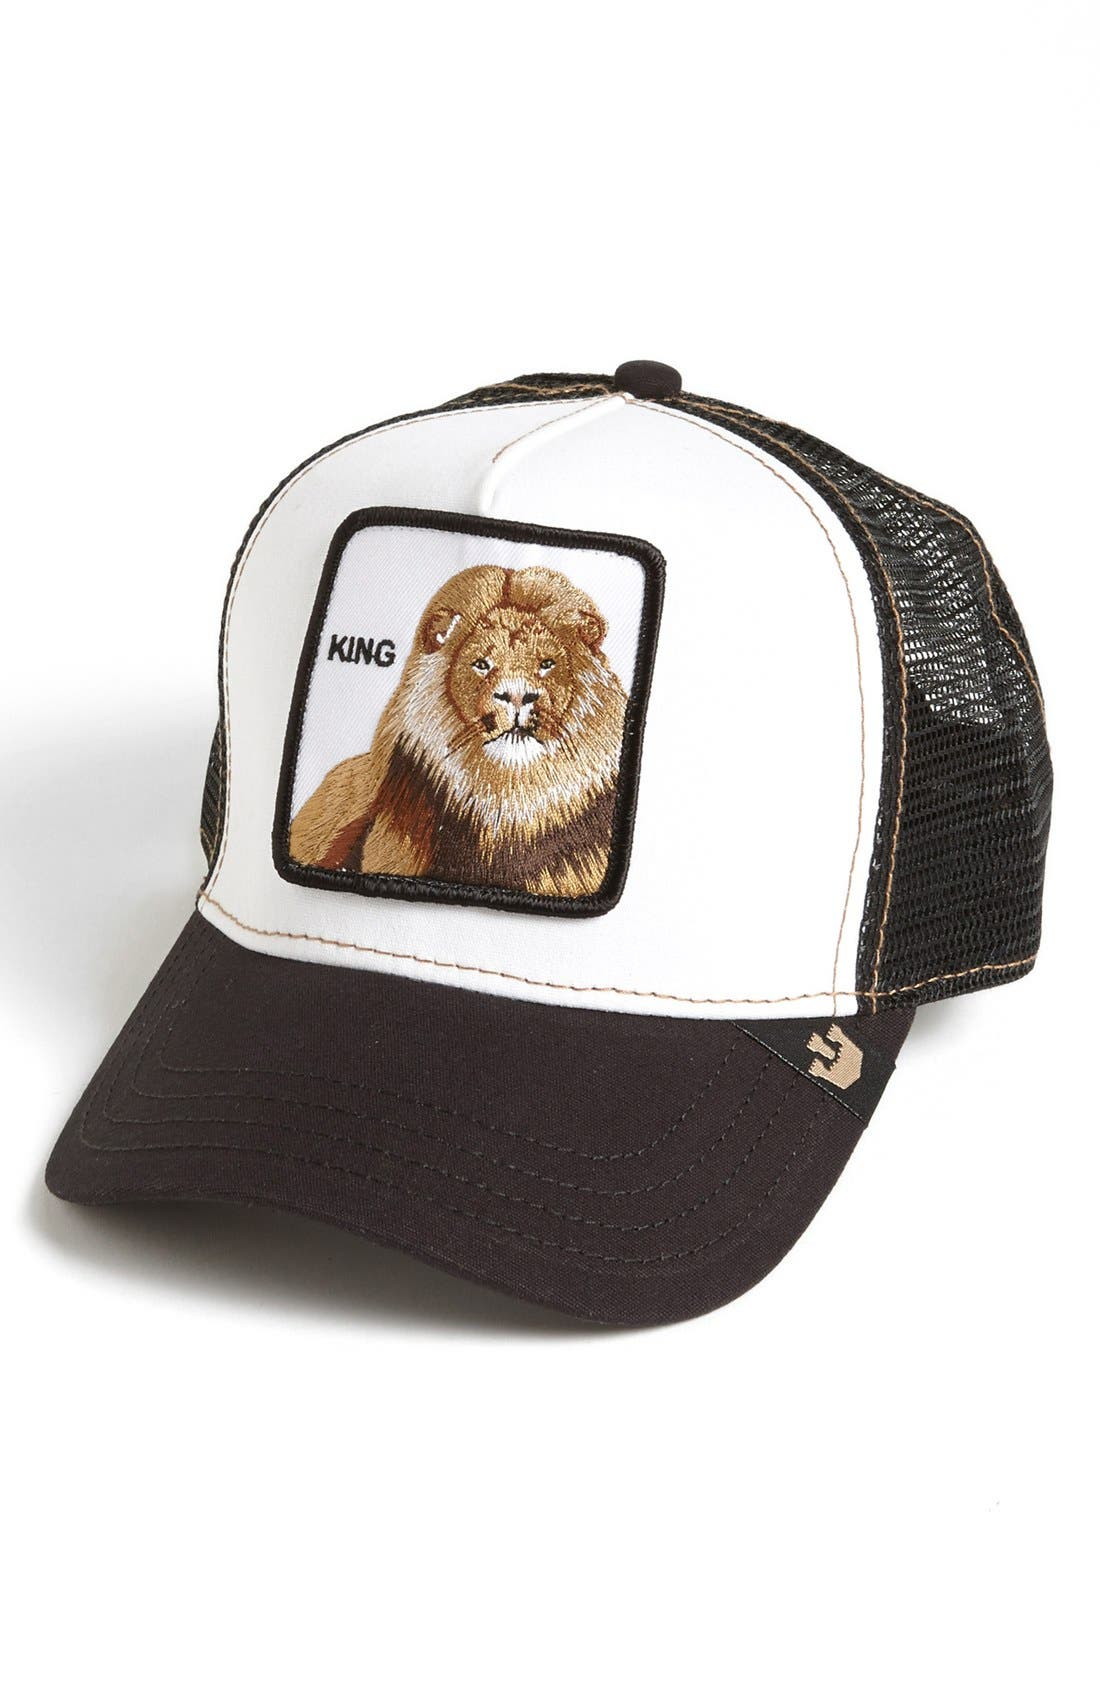 Main Image - Goorin Brothers 'Animal Farm - King' Trucker Hat